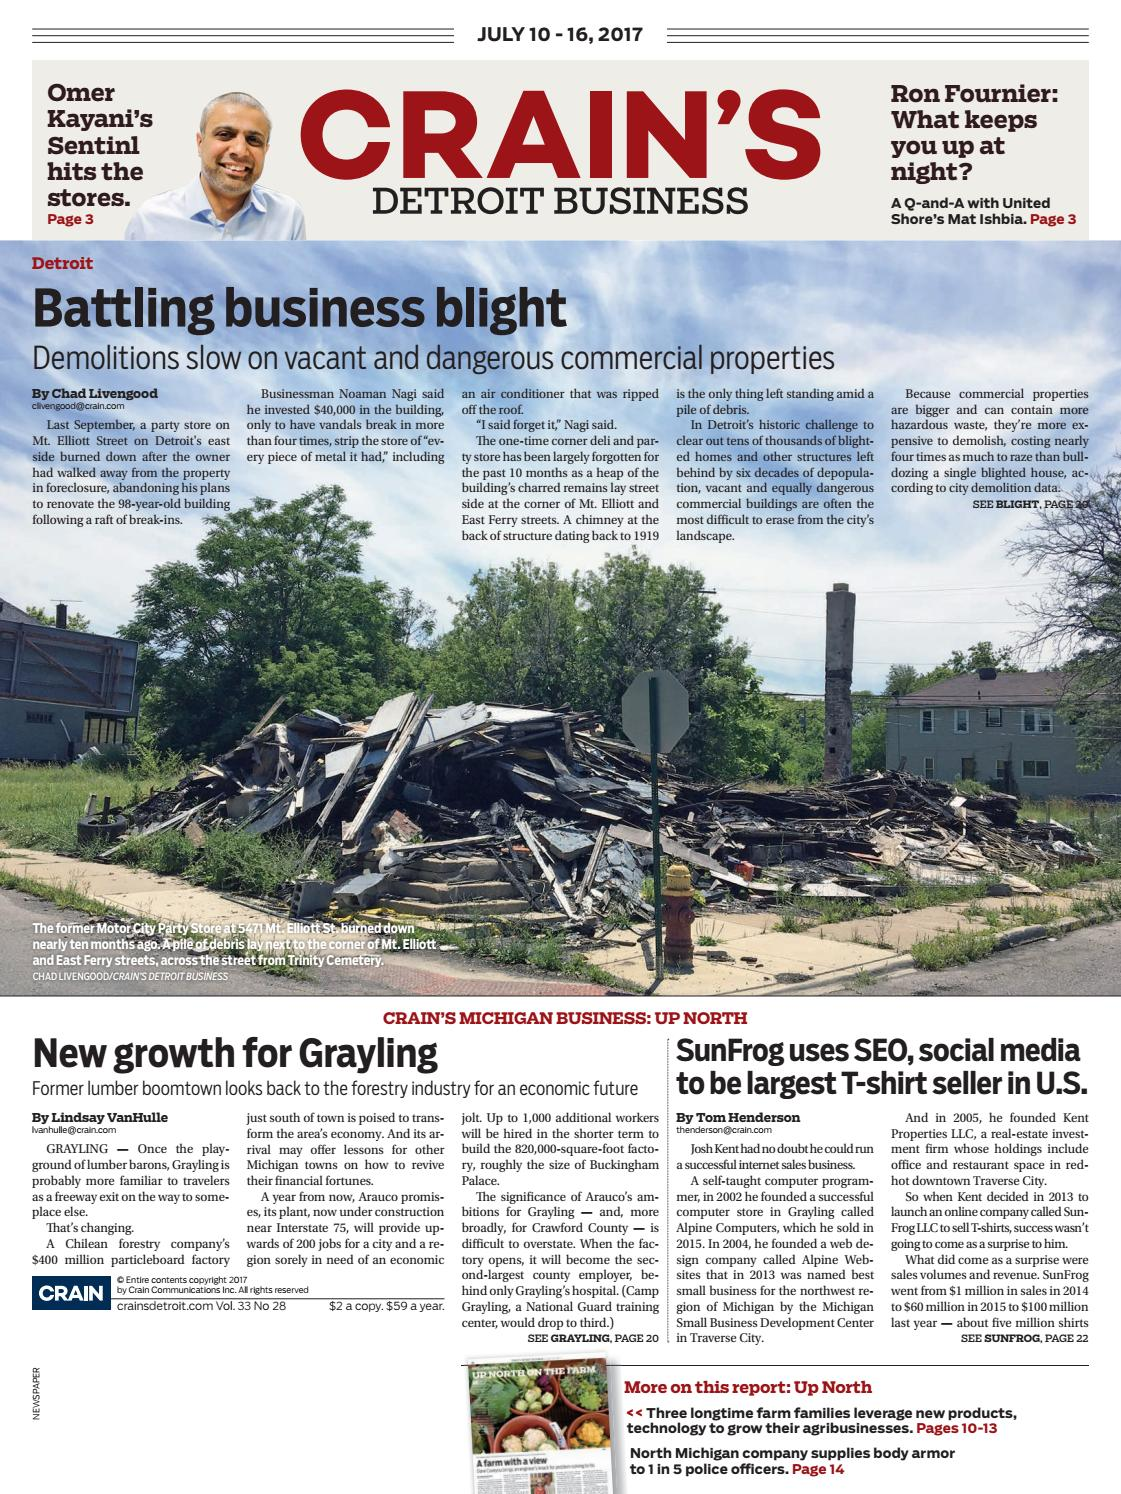 Crain S Detroit Business July 10 2017 Issue By Crain S Detroit Business Issuu